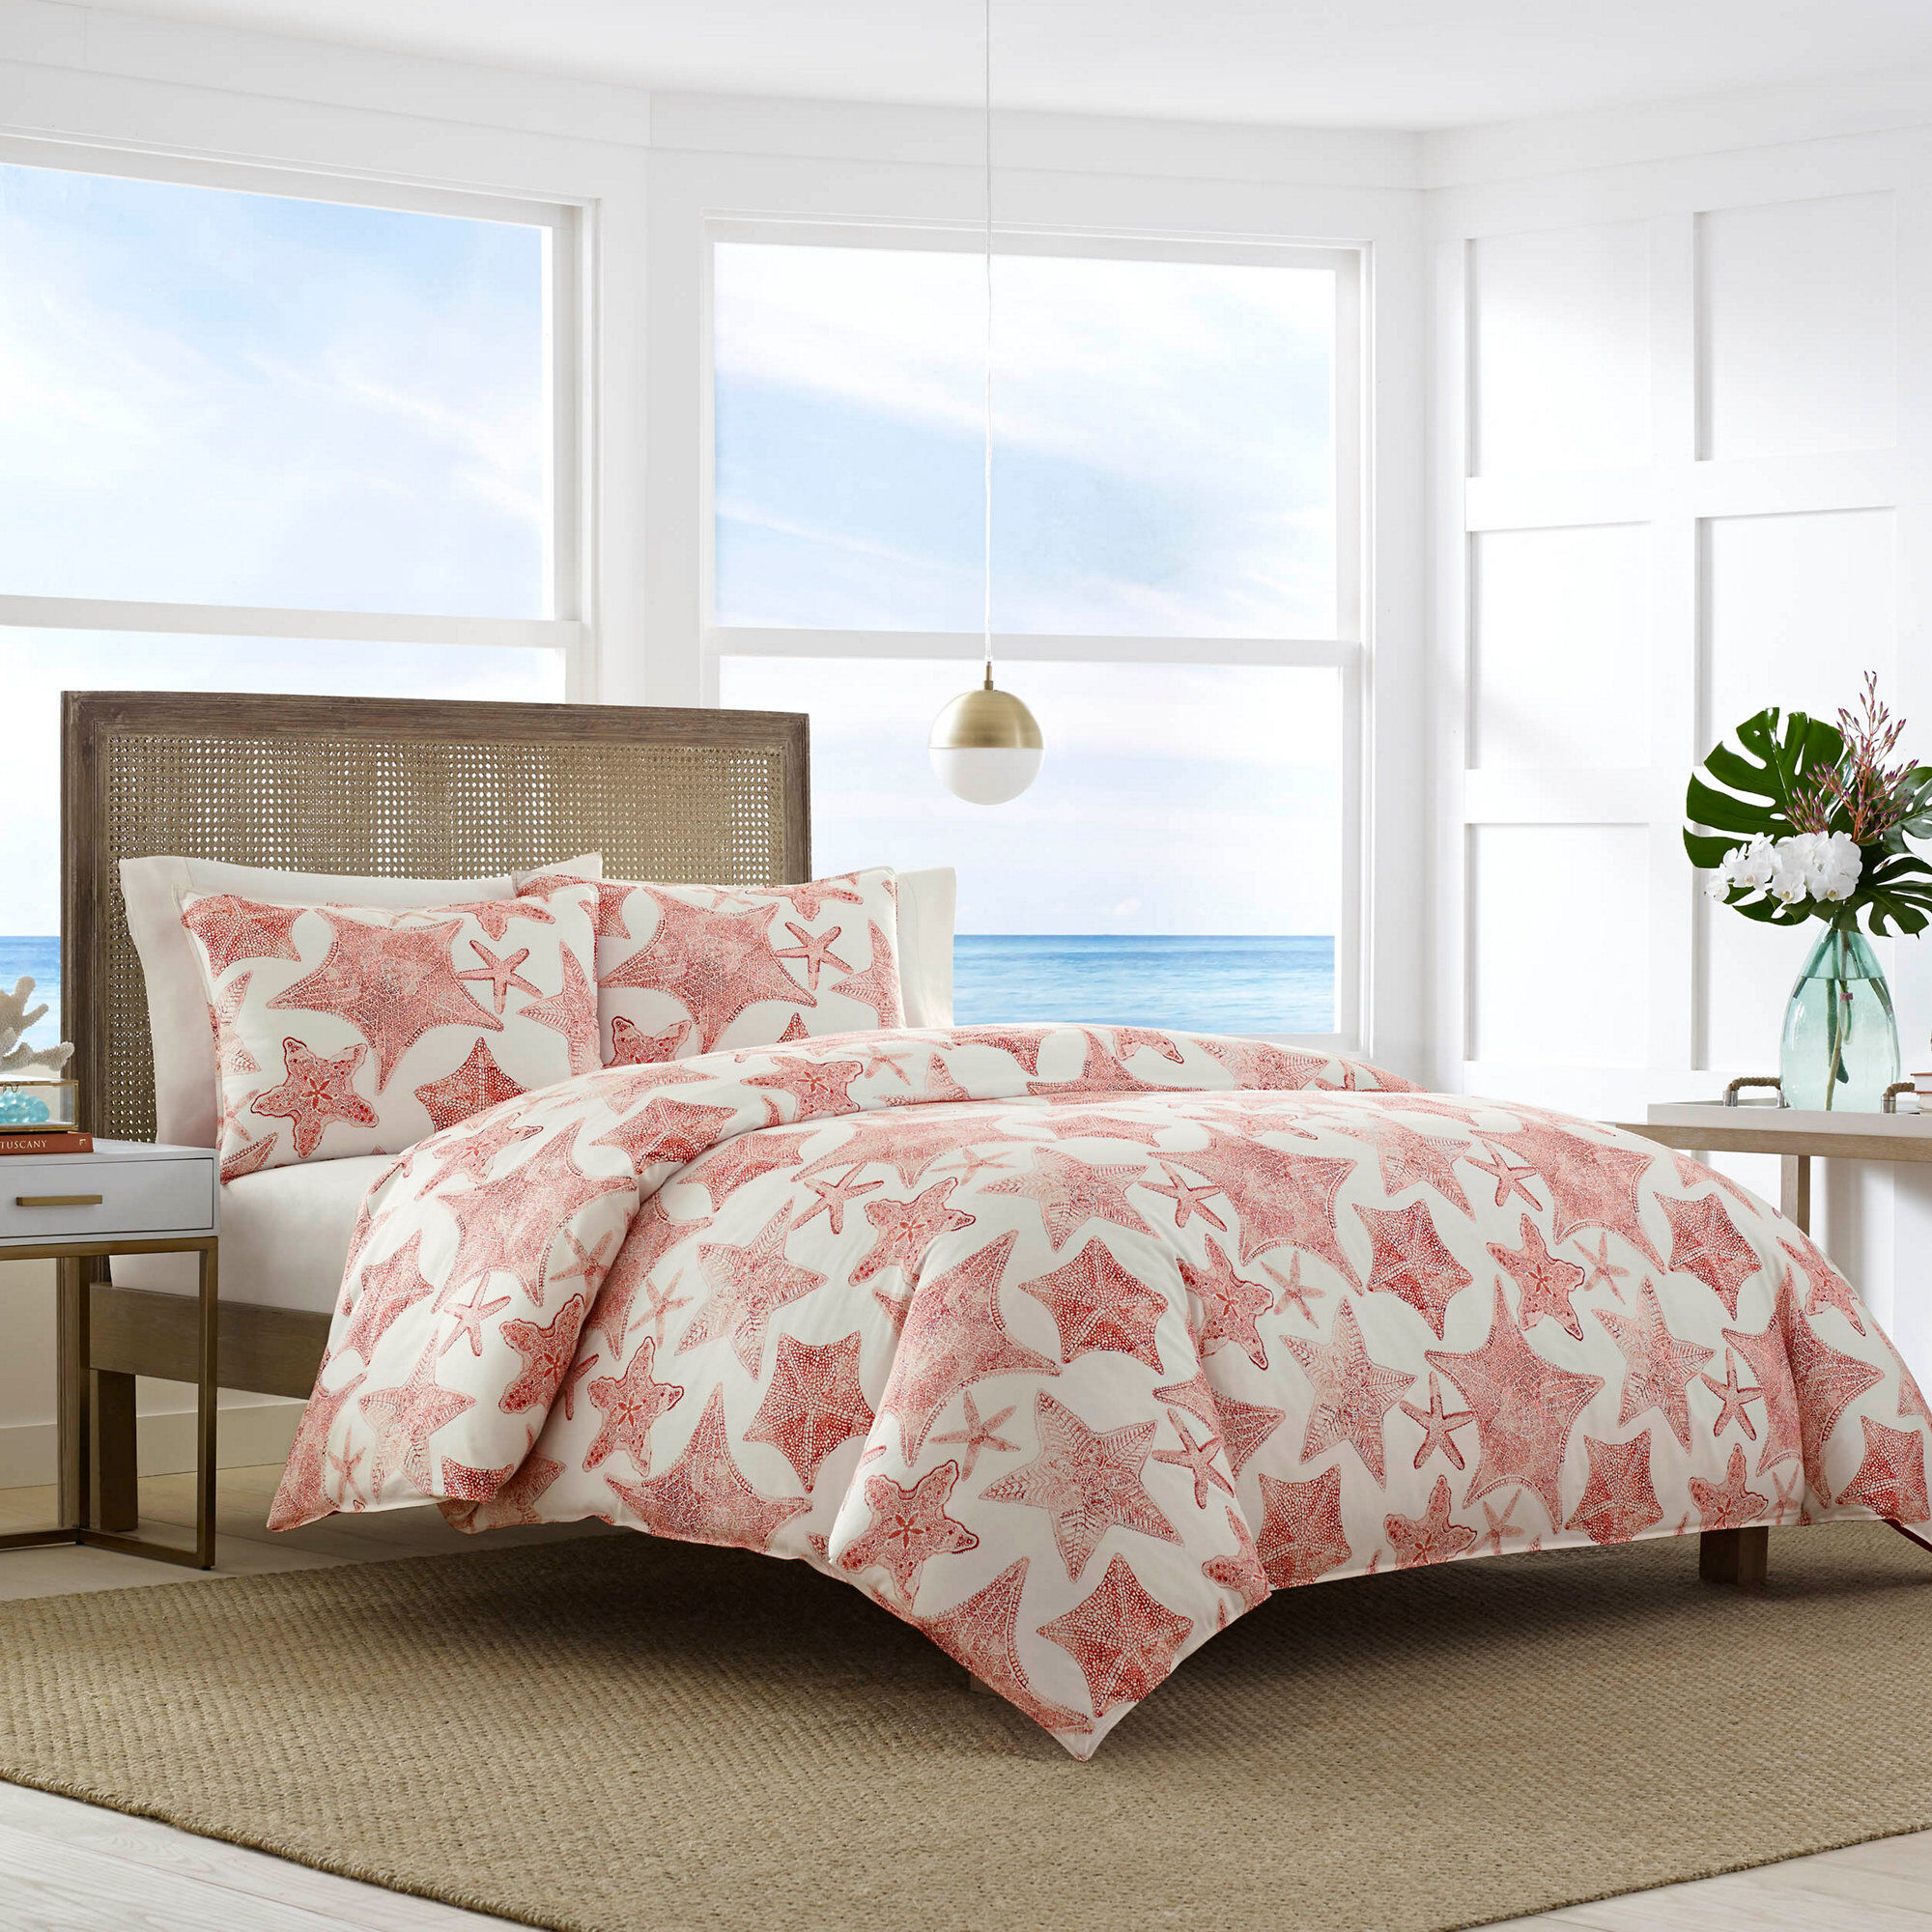 Duvet And Comforter Sets Ripple Coral Comforter Set